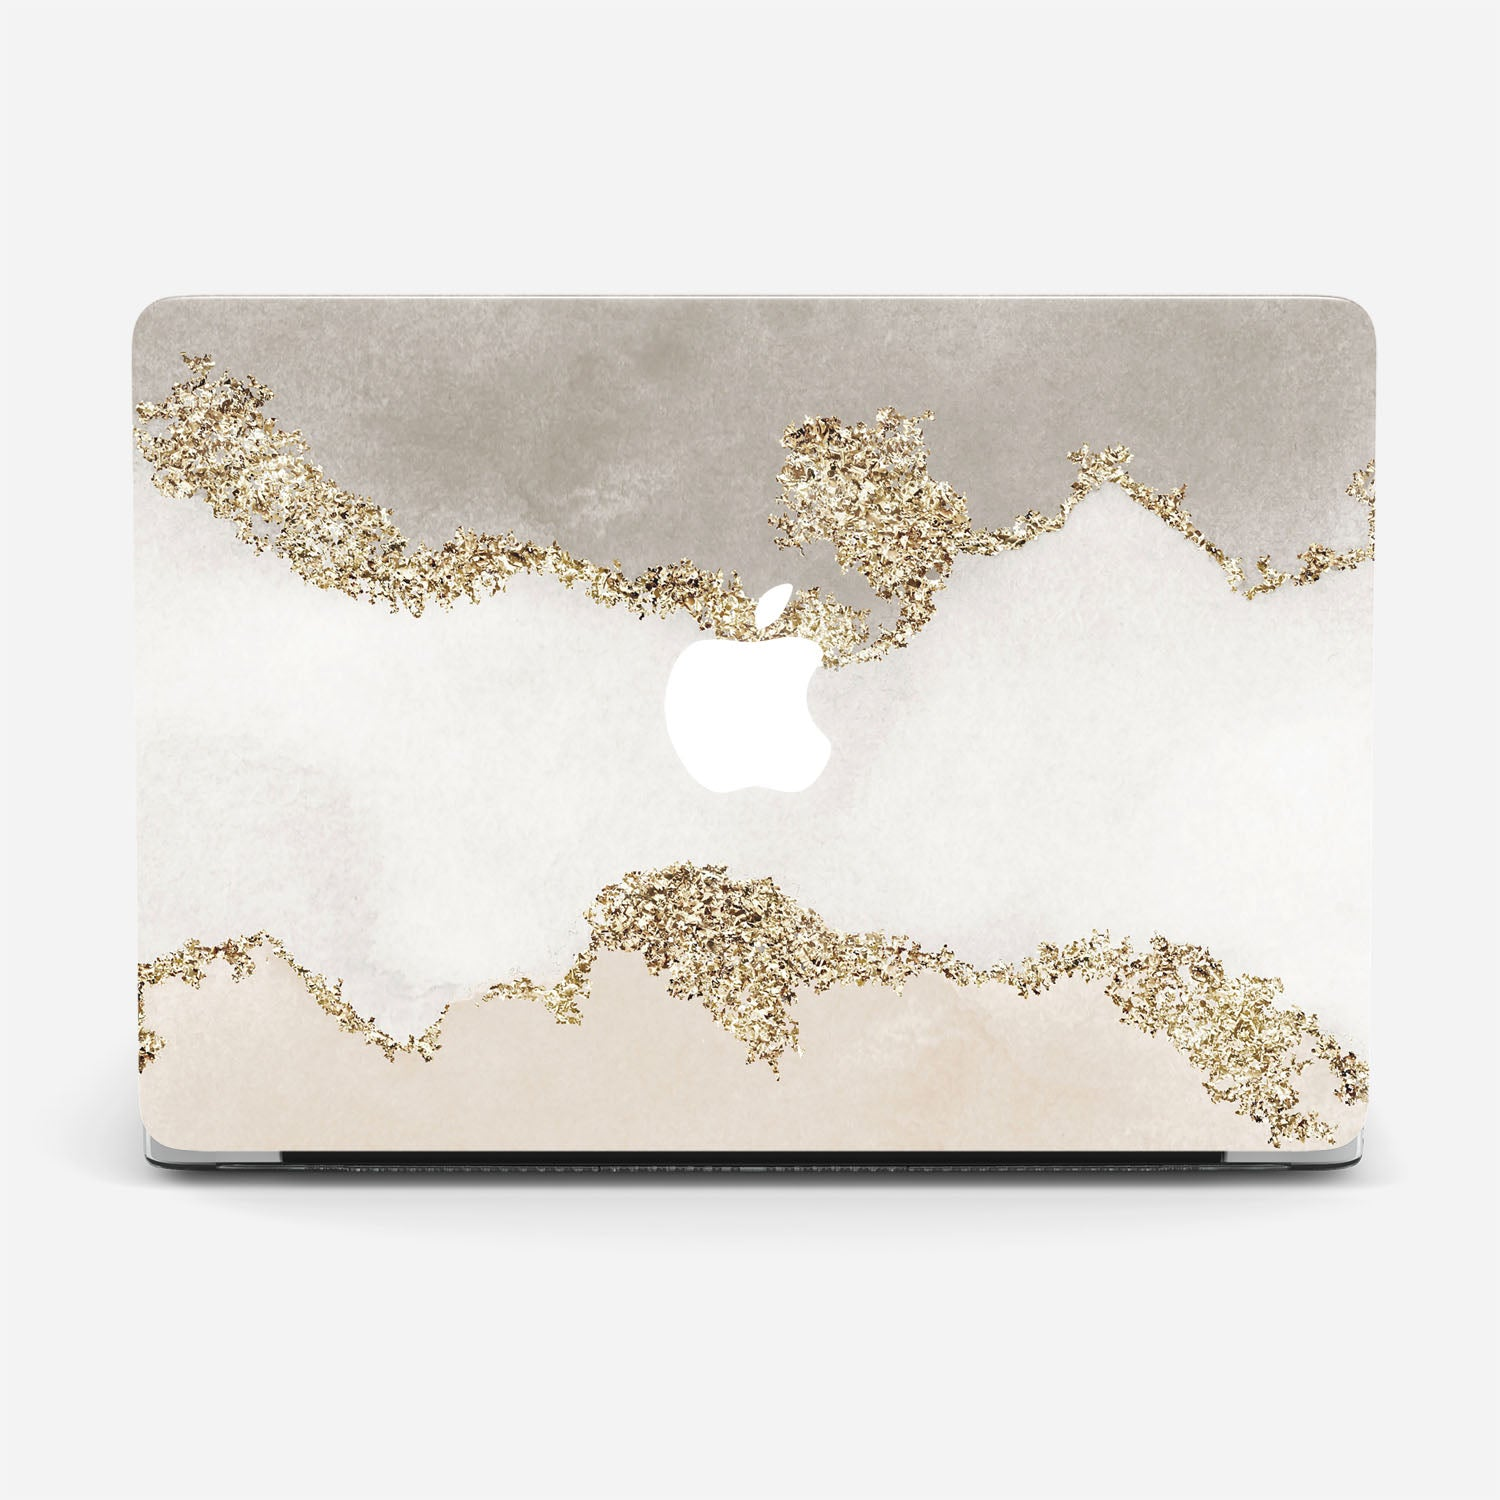 GOLDEN COAST Macbook Pro skins 13 inch | Pigtou